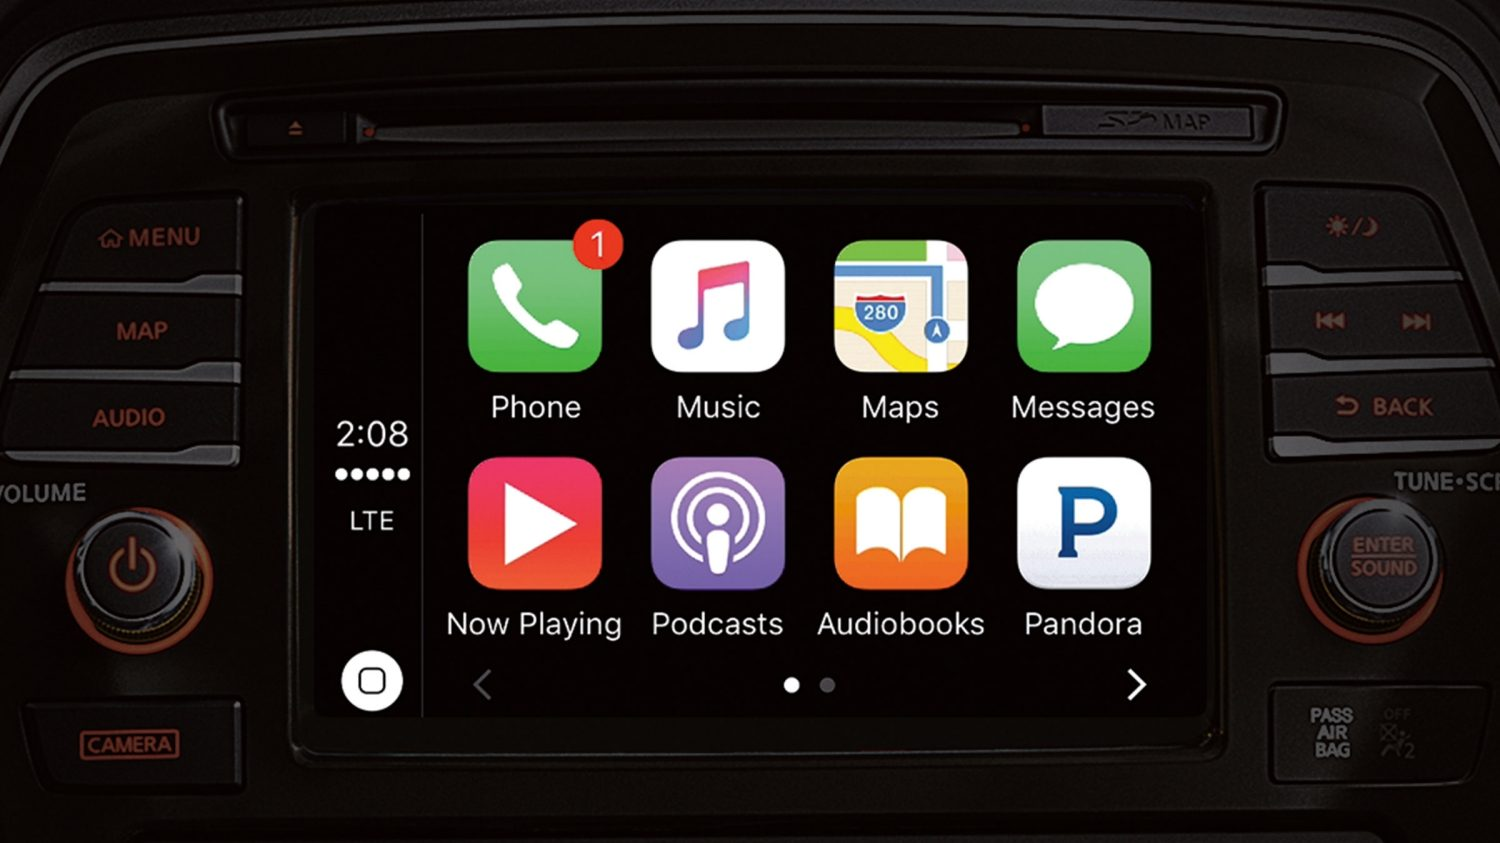 Pantalla de Apple CarPlay en el Nissan Maxima